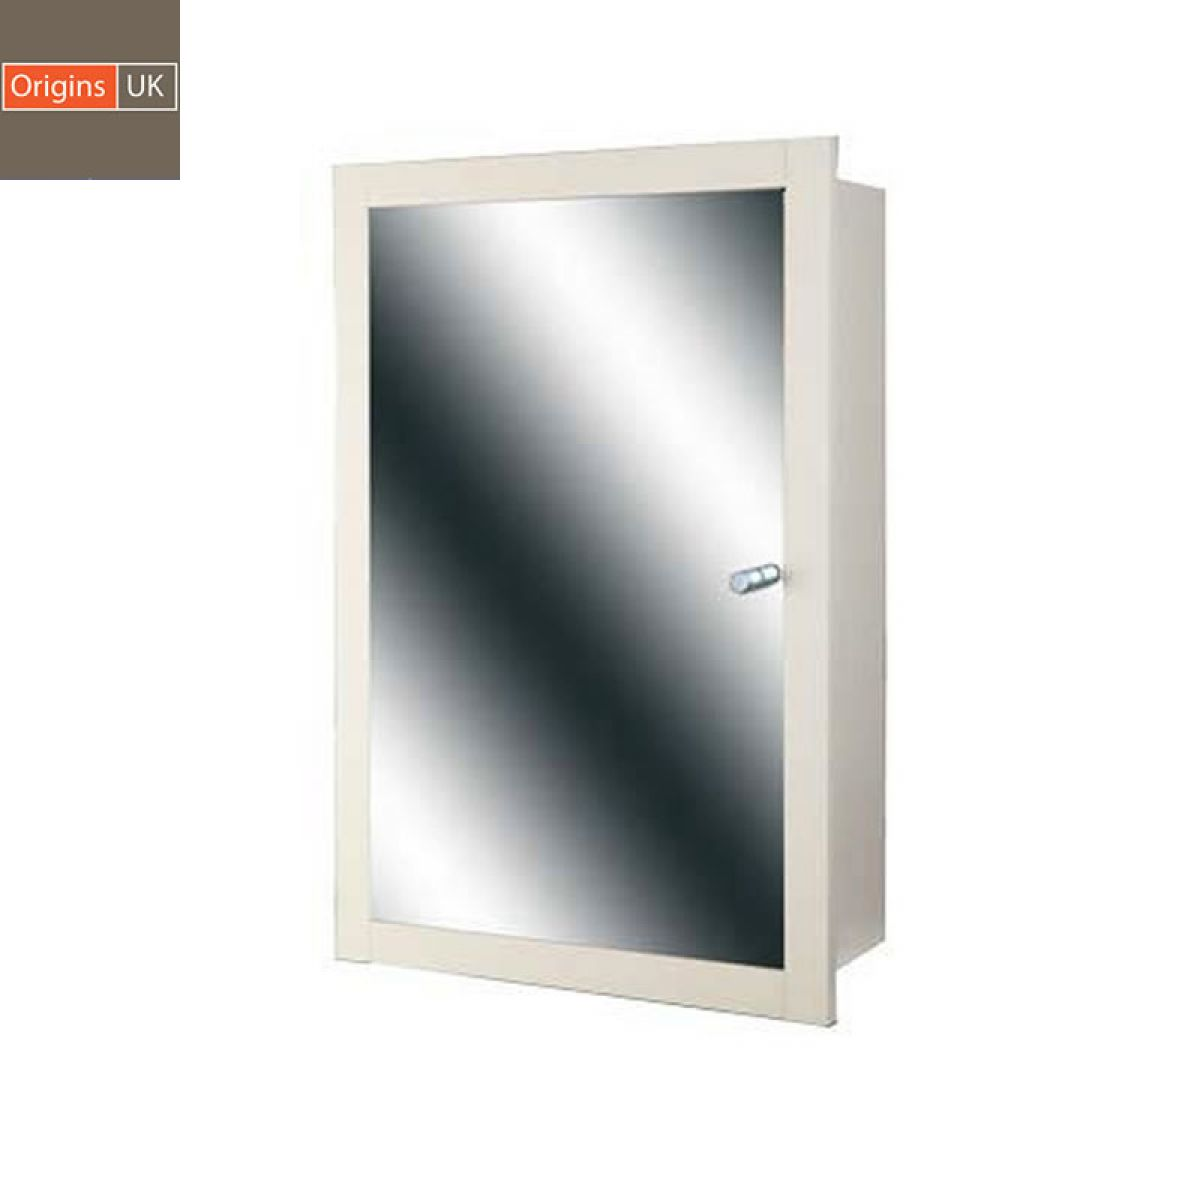 ... Origins Single Door Recessed Mirror Cabinet